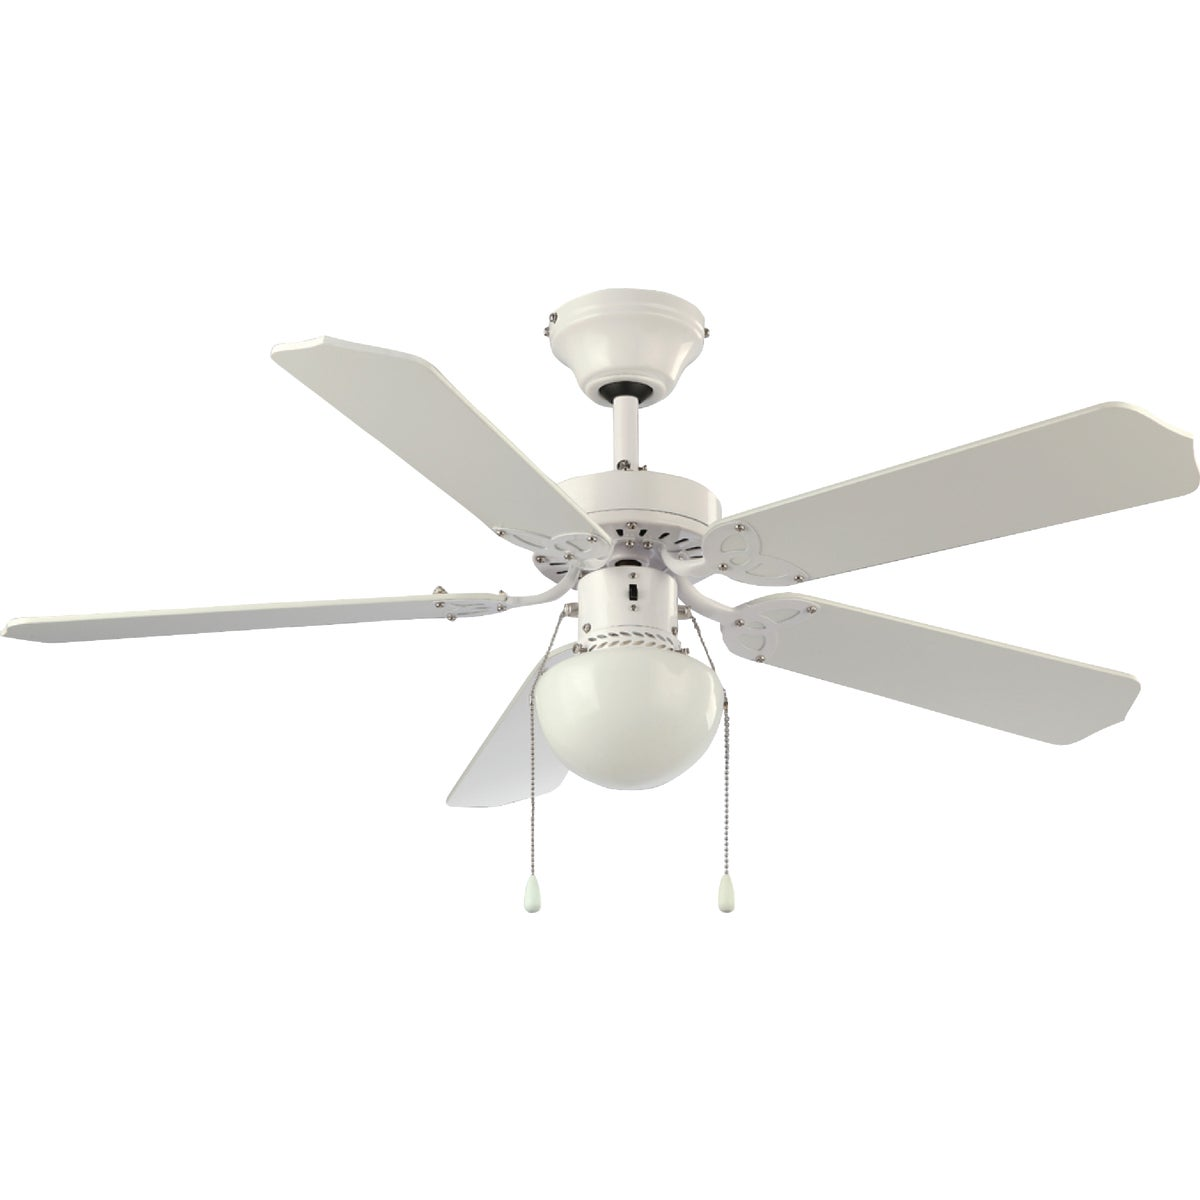 "42"" WHITE CEILING FAN - CF42MBR5WH by Canarm Gs"